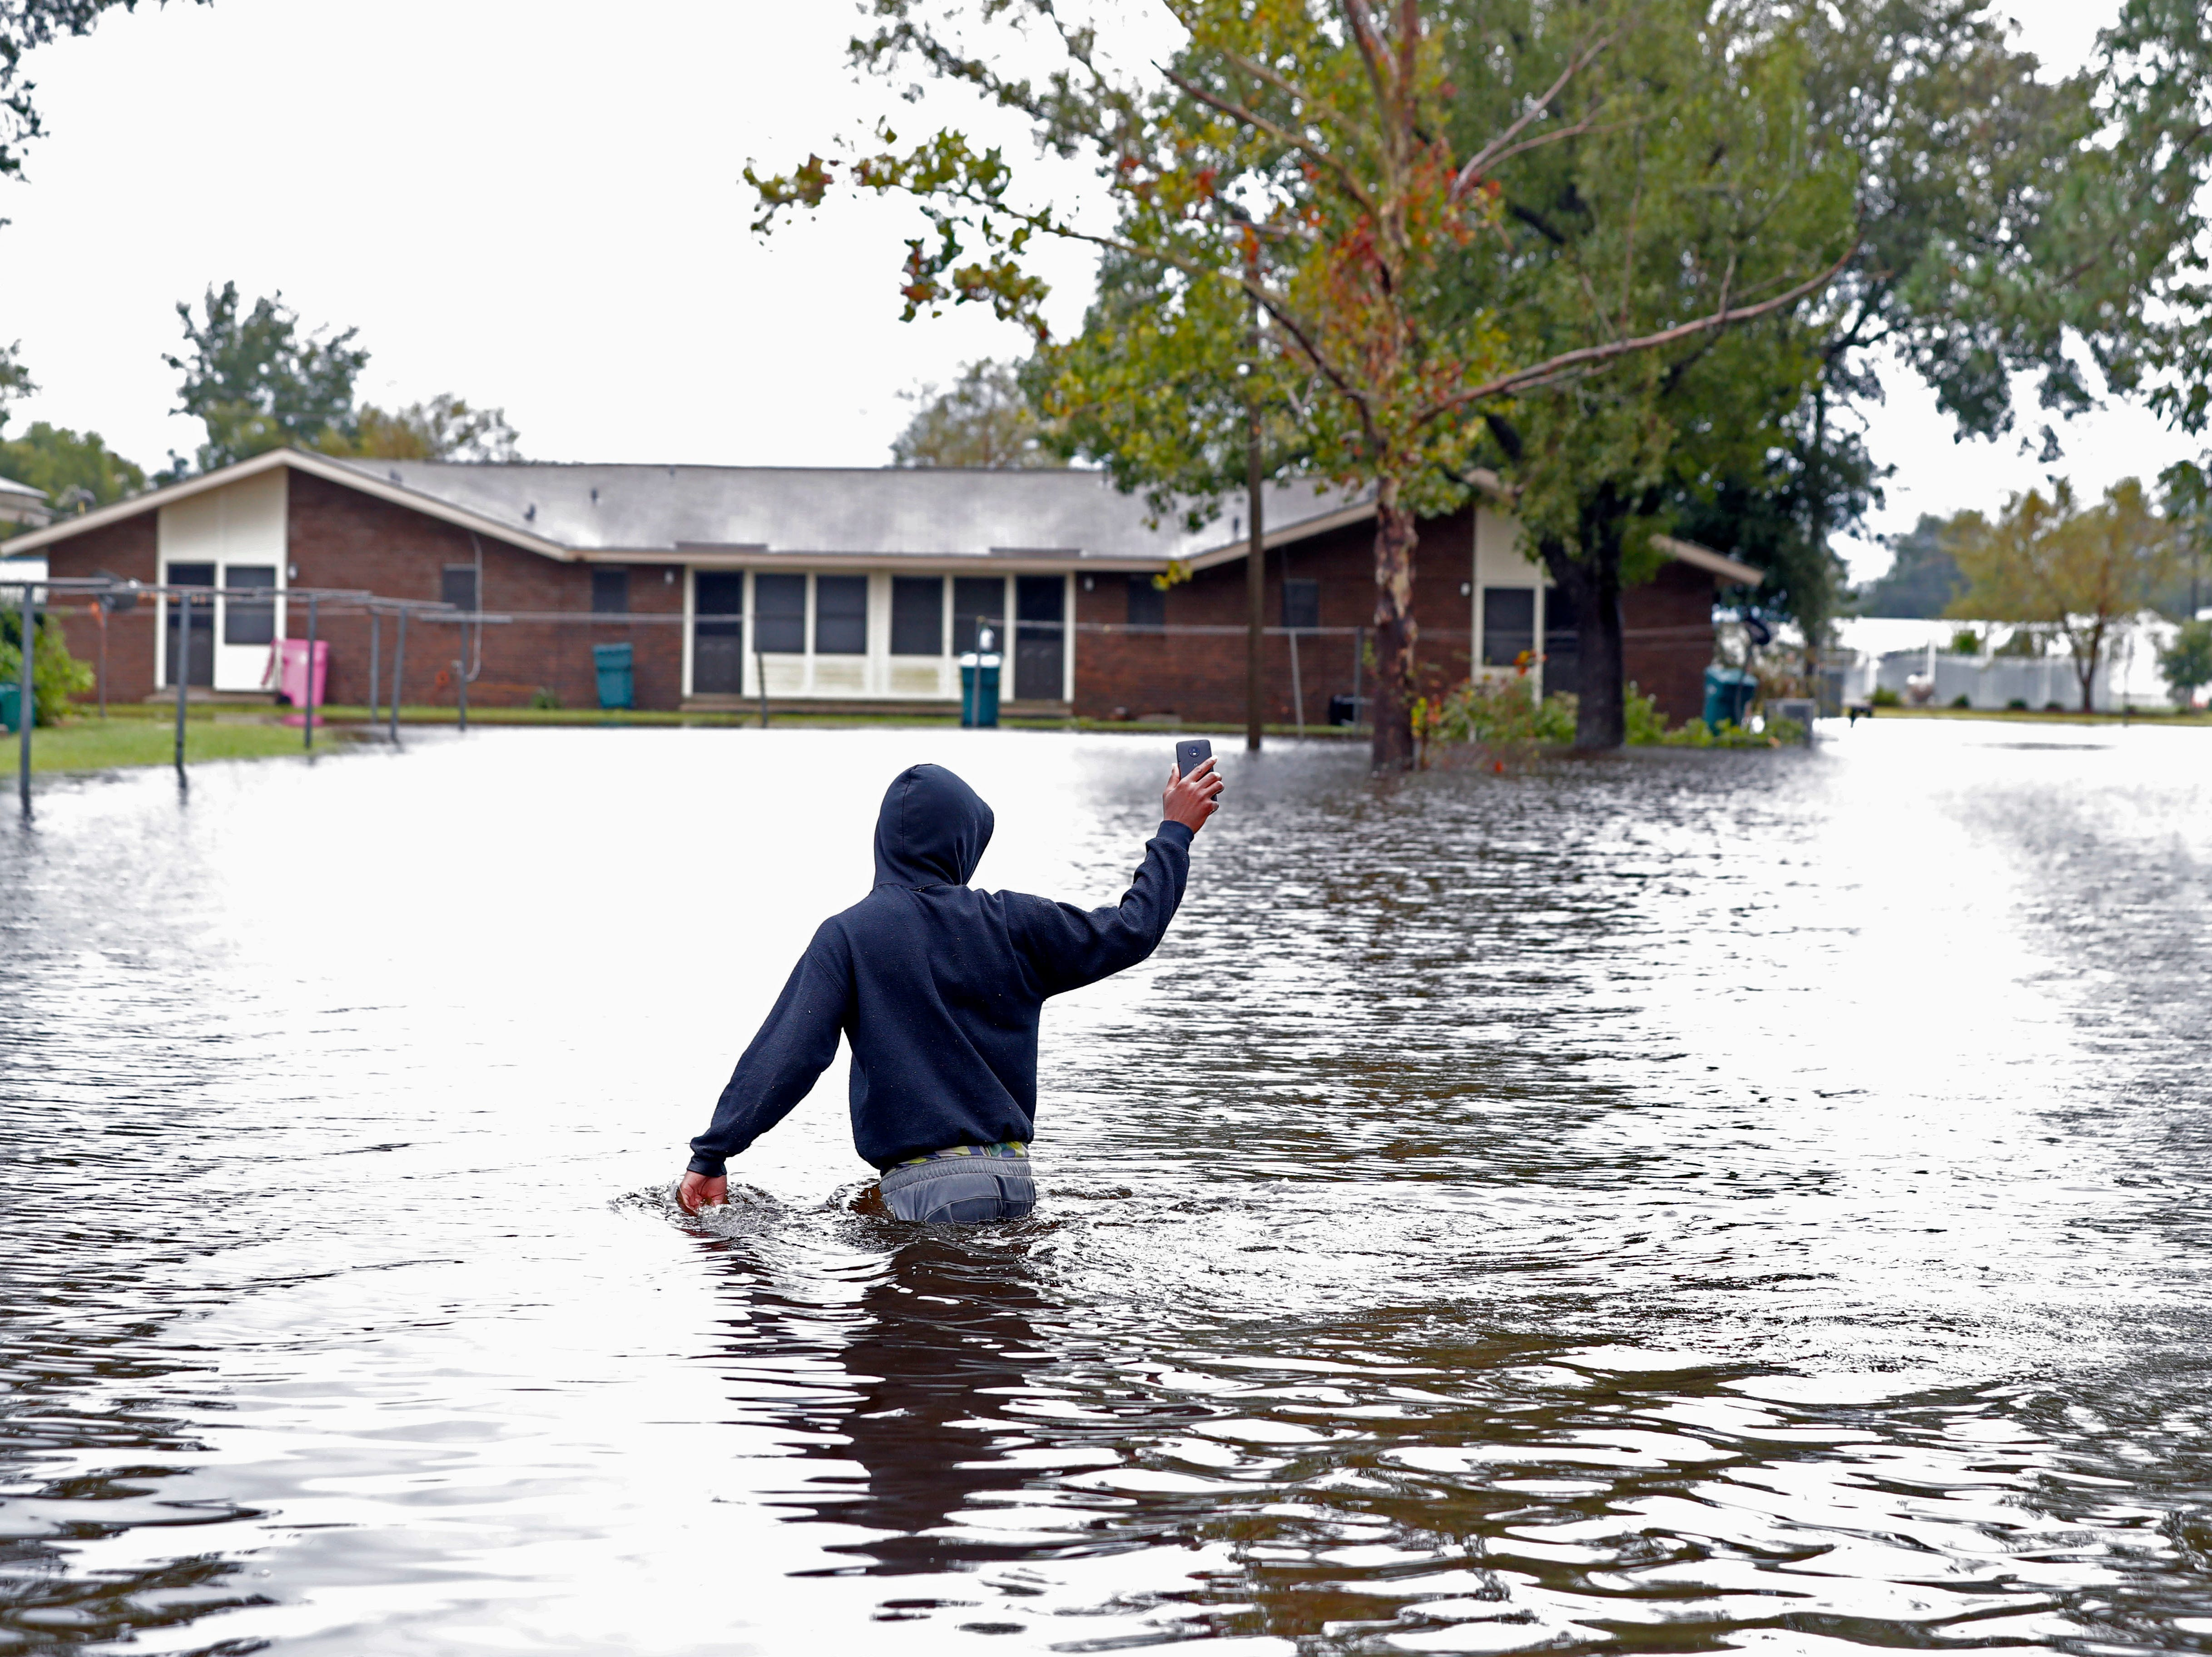 Camrey Mosley walks down a street through floodwaters from Hurricane Florence, in Marion, S.C., Sunday, Sept. 16, 2018.